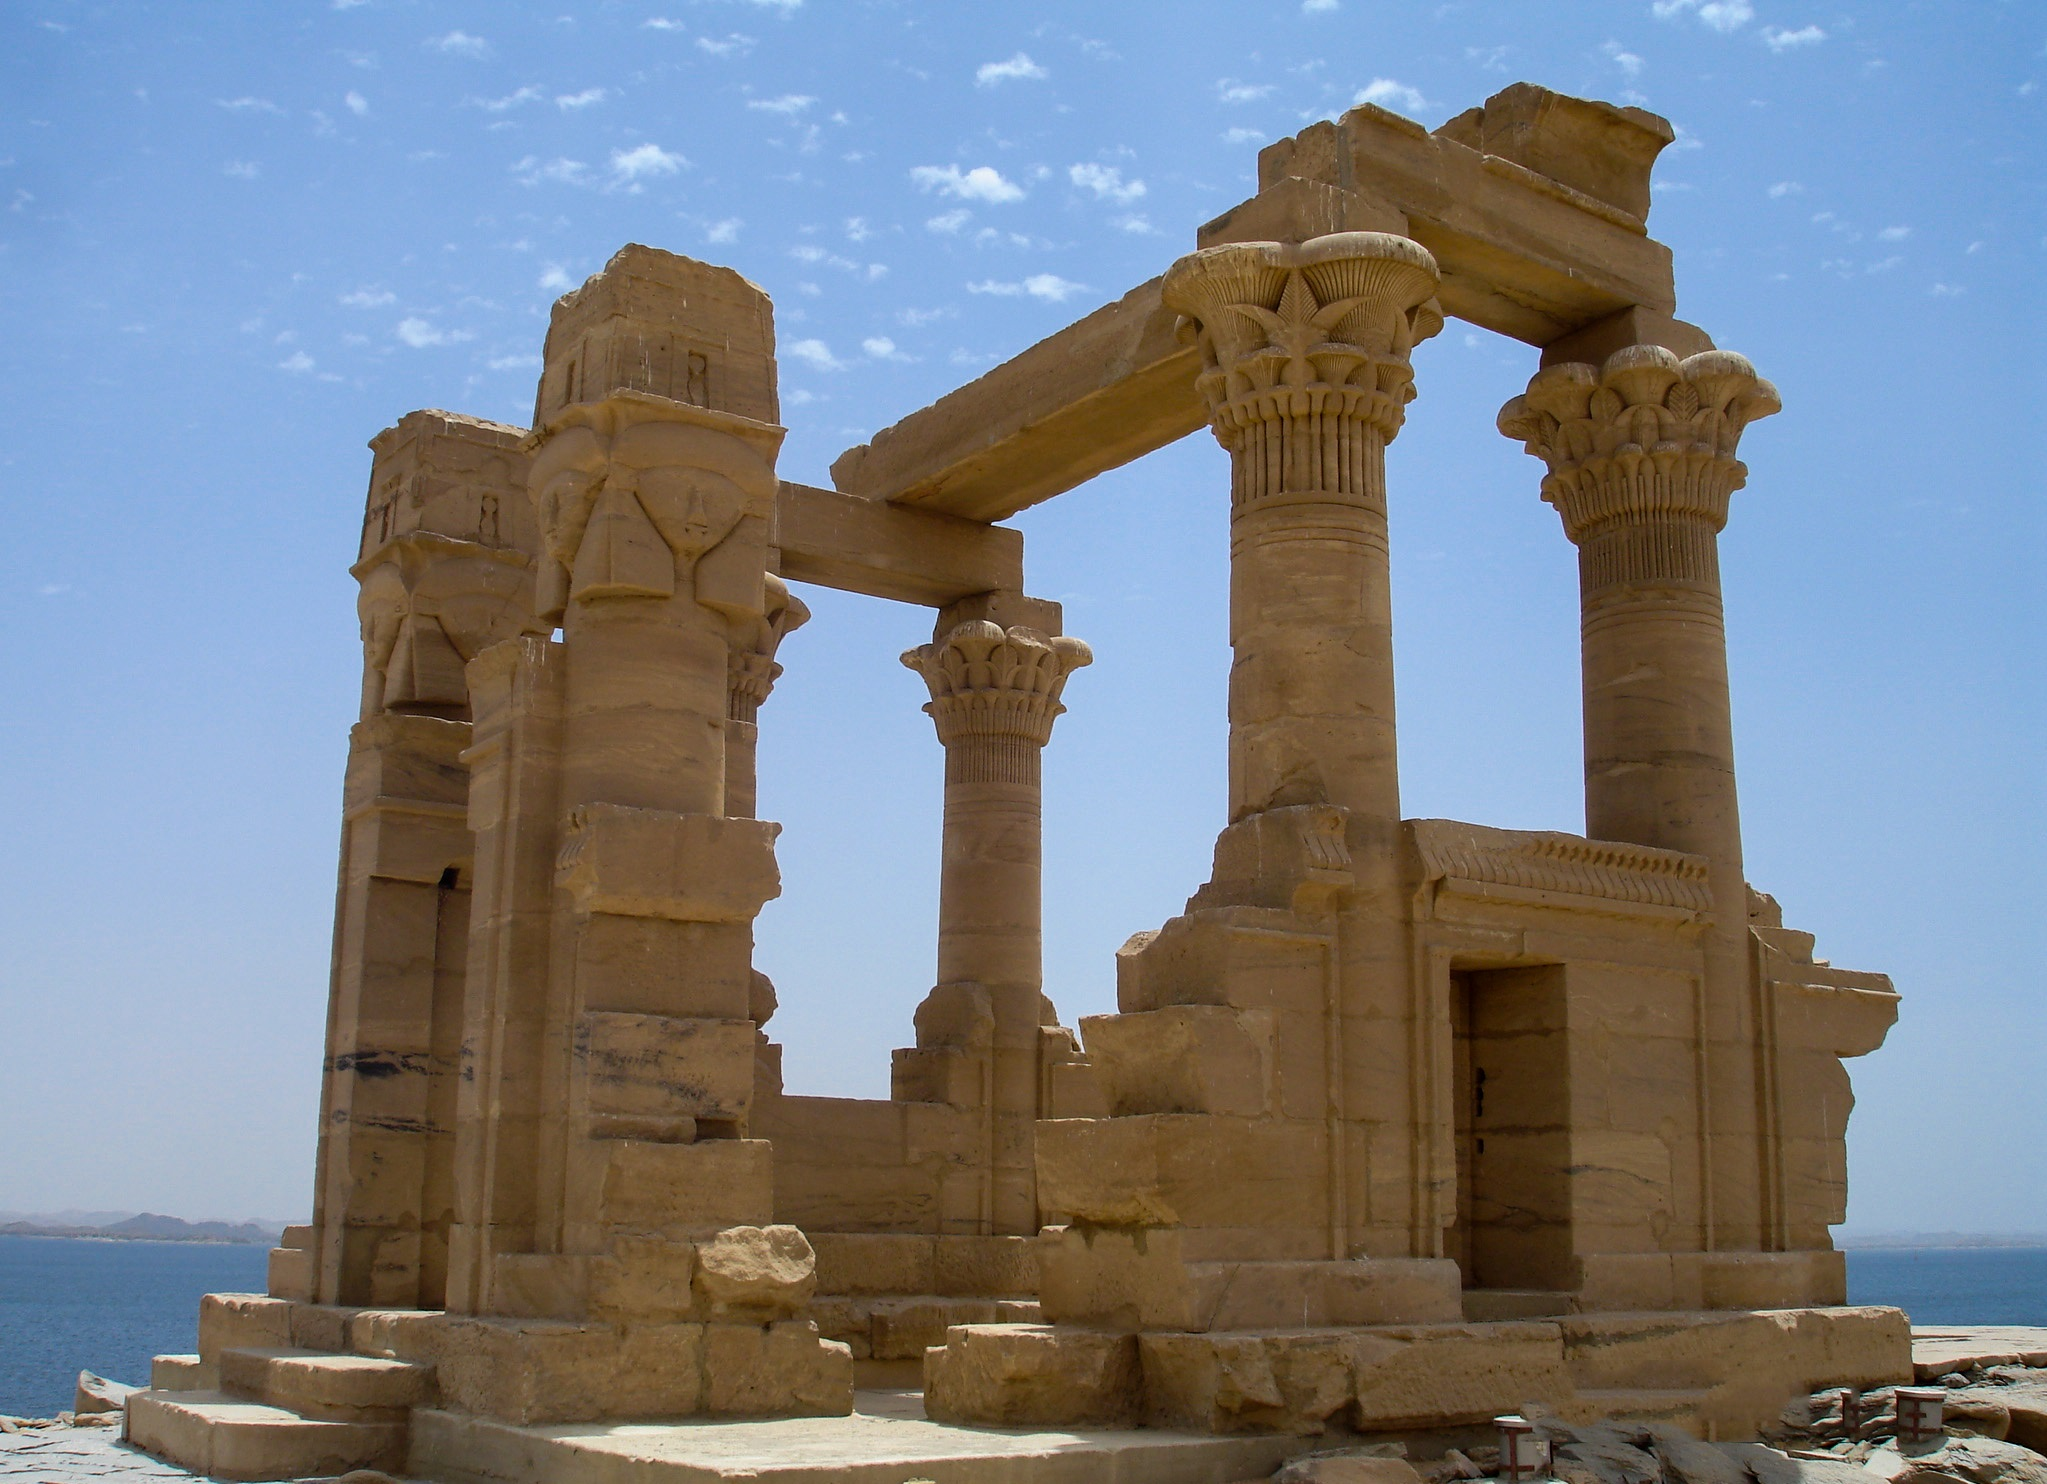 Day tour to Kalabsha temple from Aswan